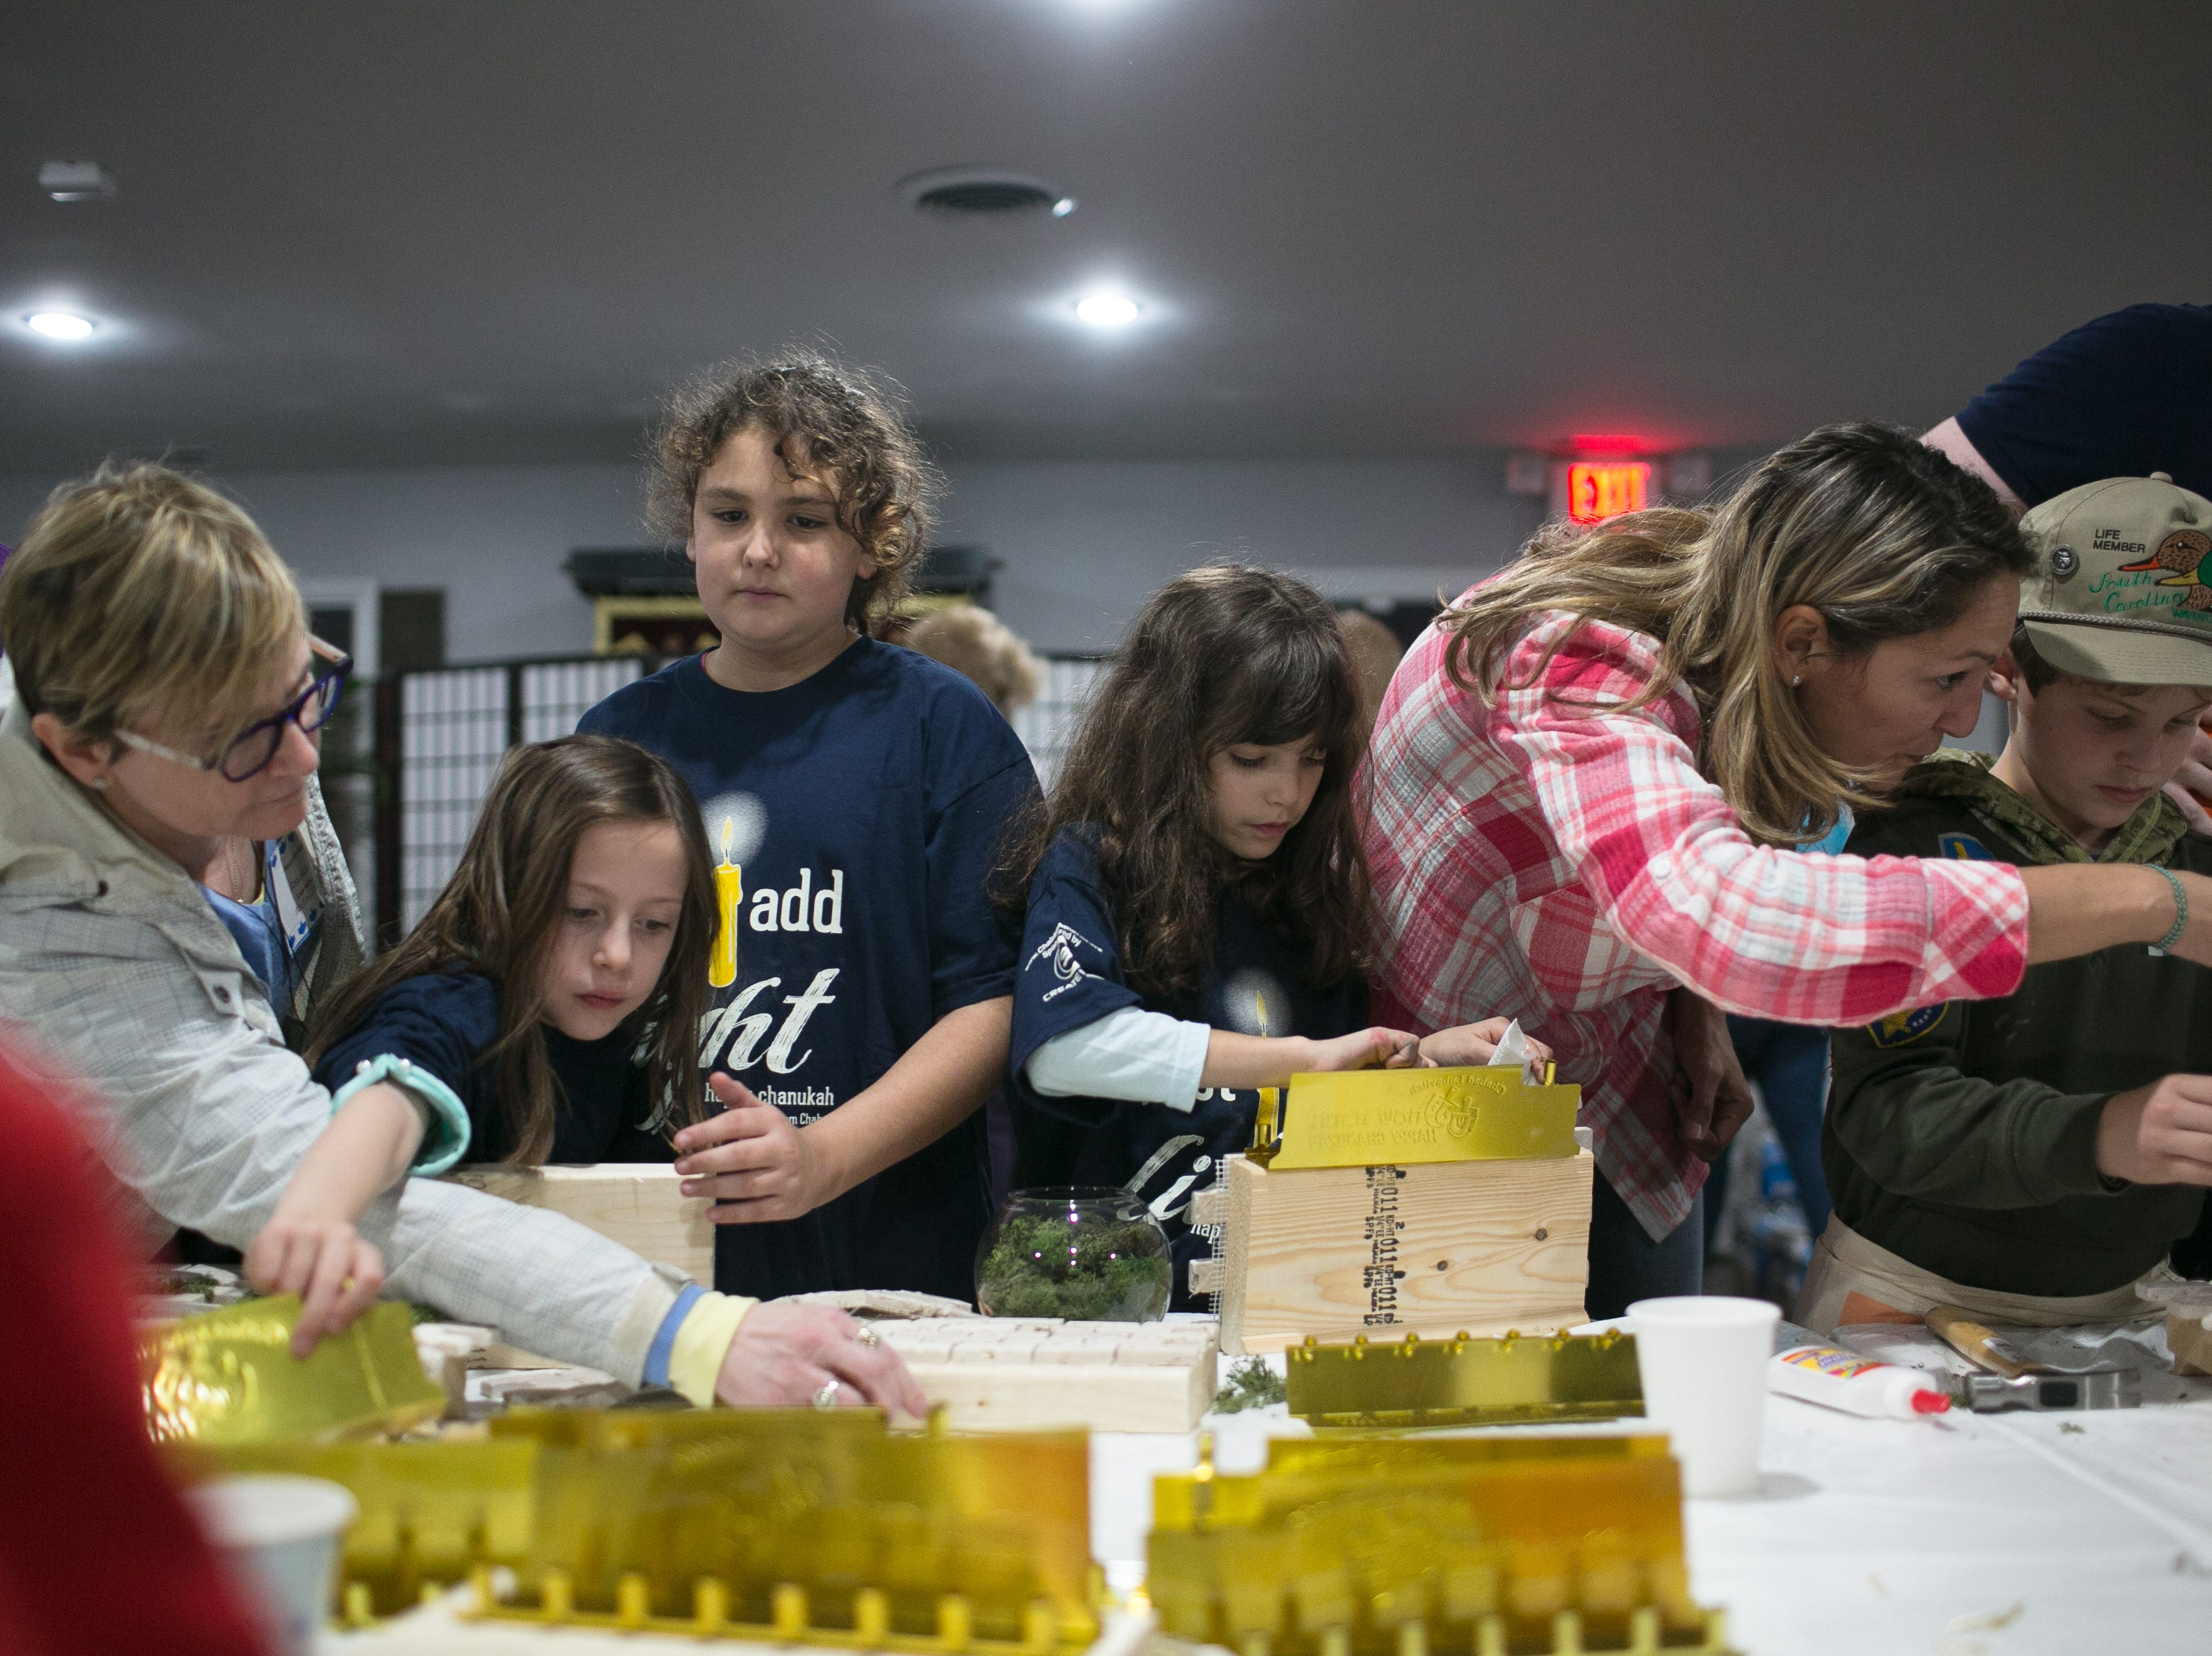 The Home Depot hosted a Western Wall Menorah building for kids during Chanukah Live!, Asheville's community Hanukkah celebration on Dec. 2, 2018.